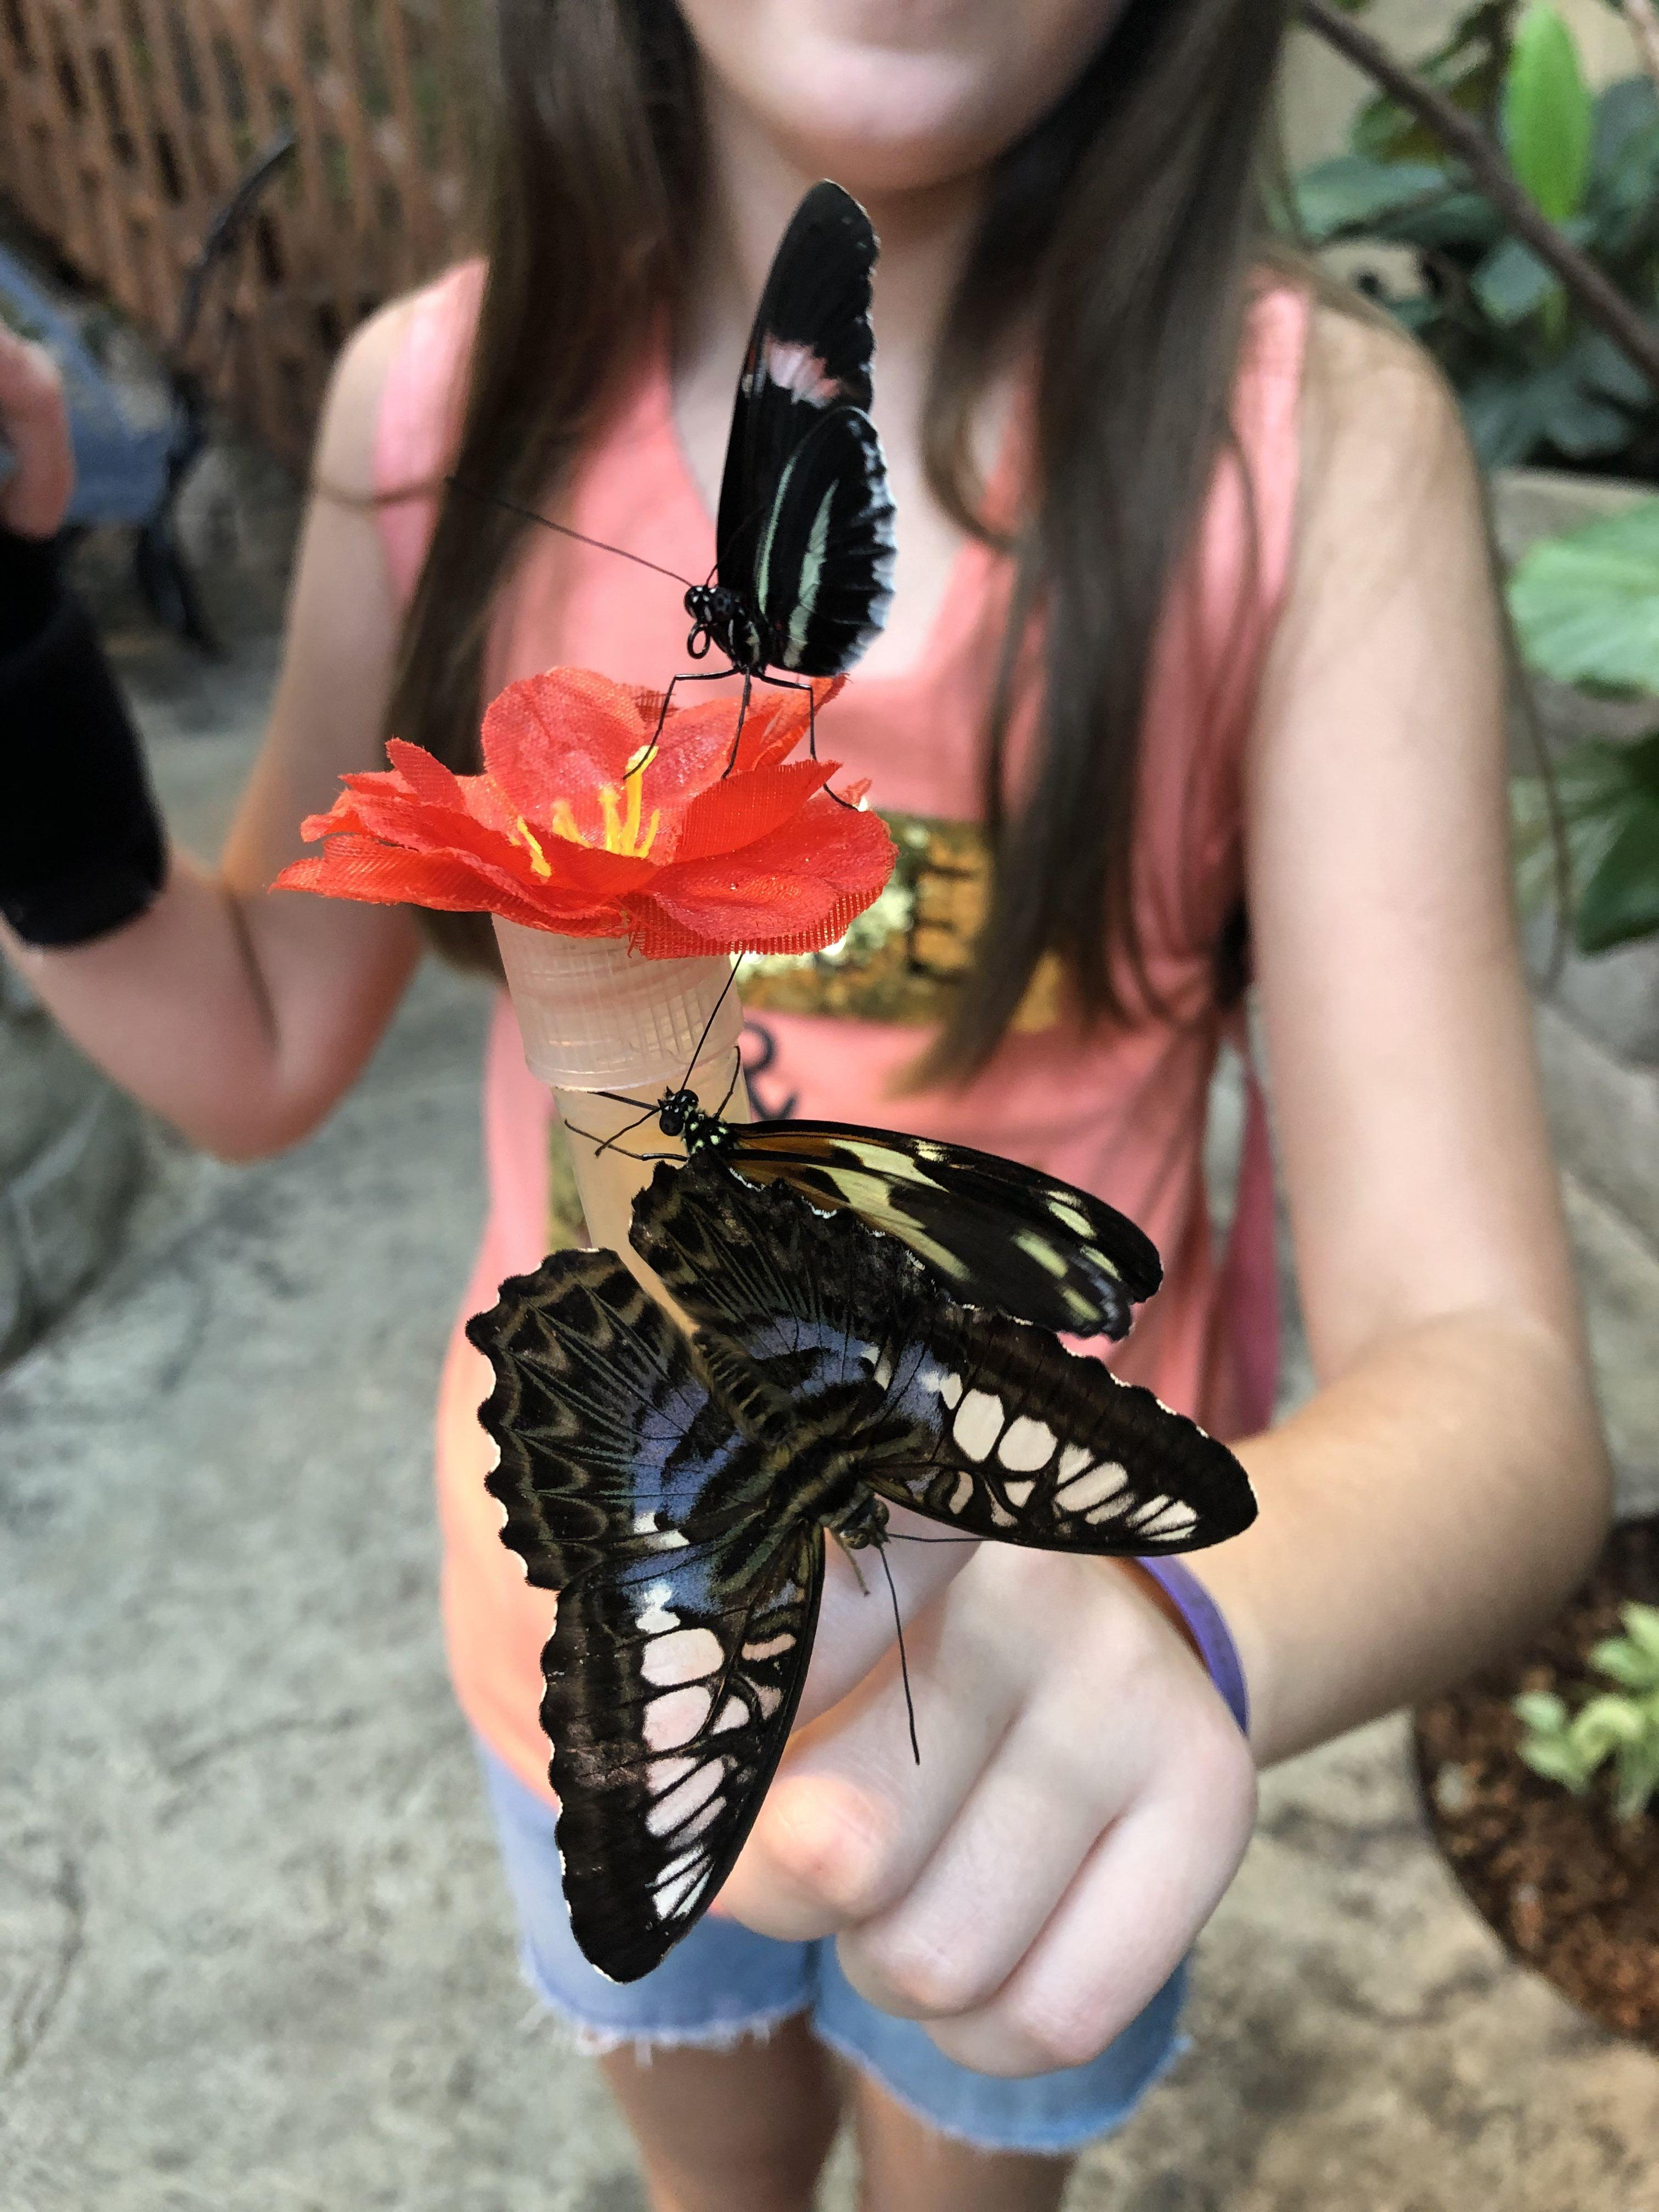 Feeding Butterflies at the Butterfly Palace and Rainforest Adventure